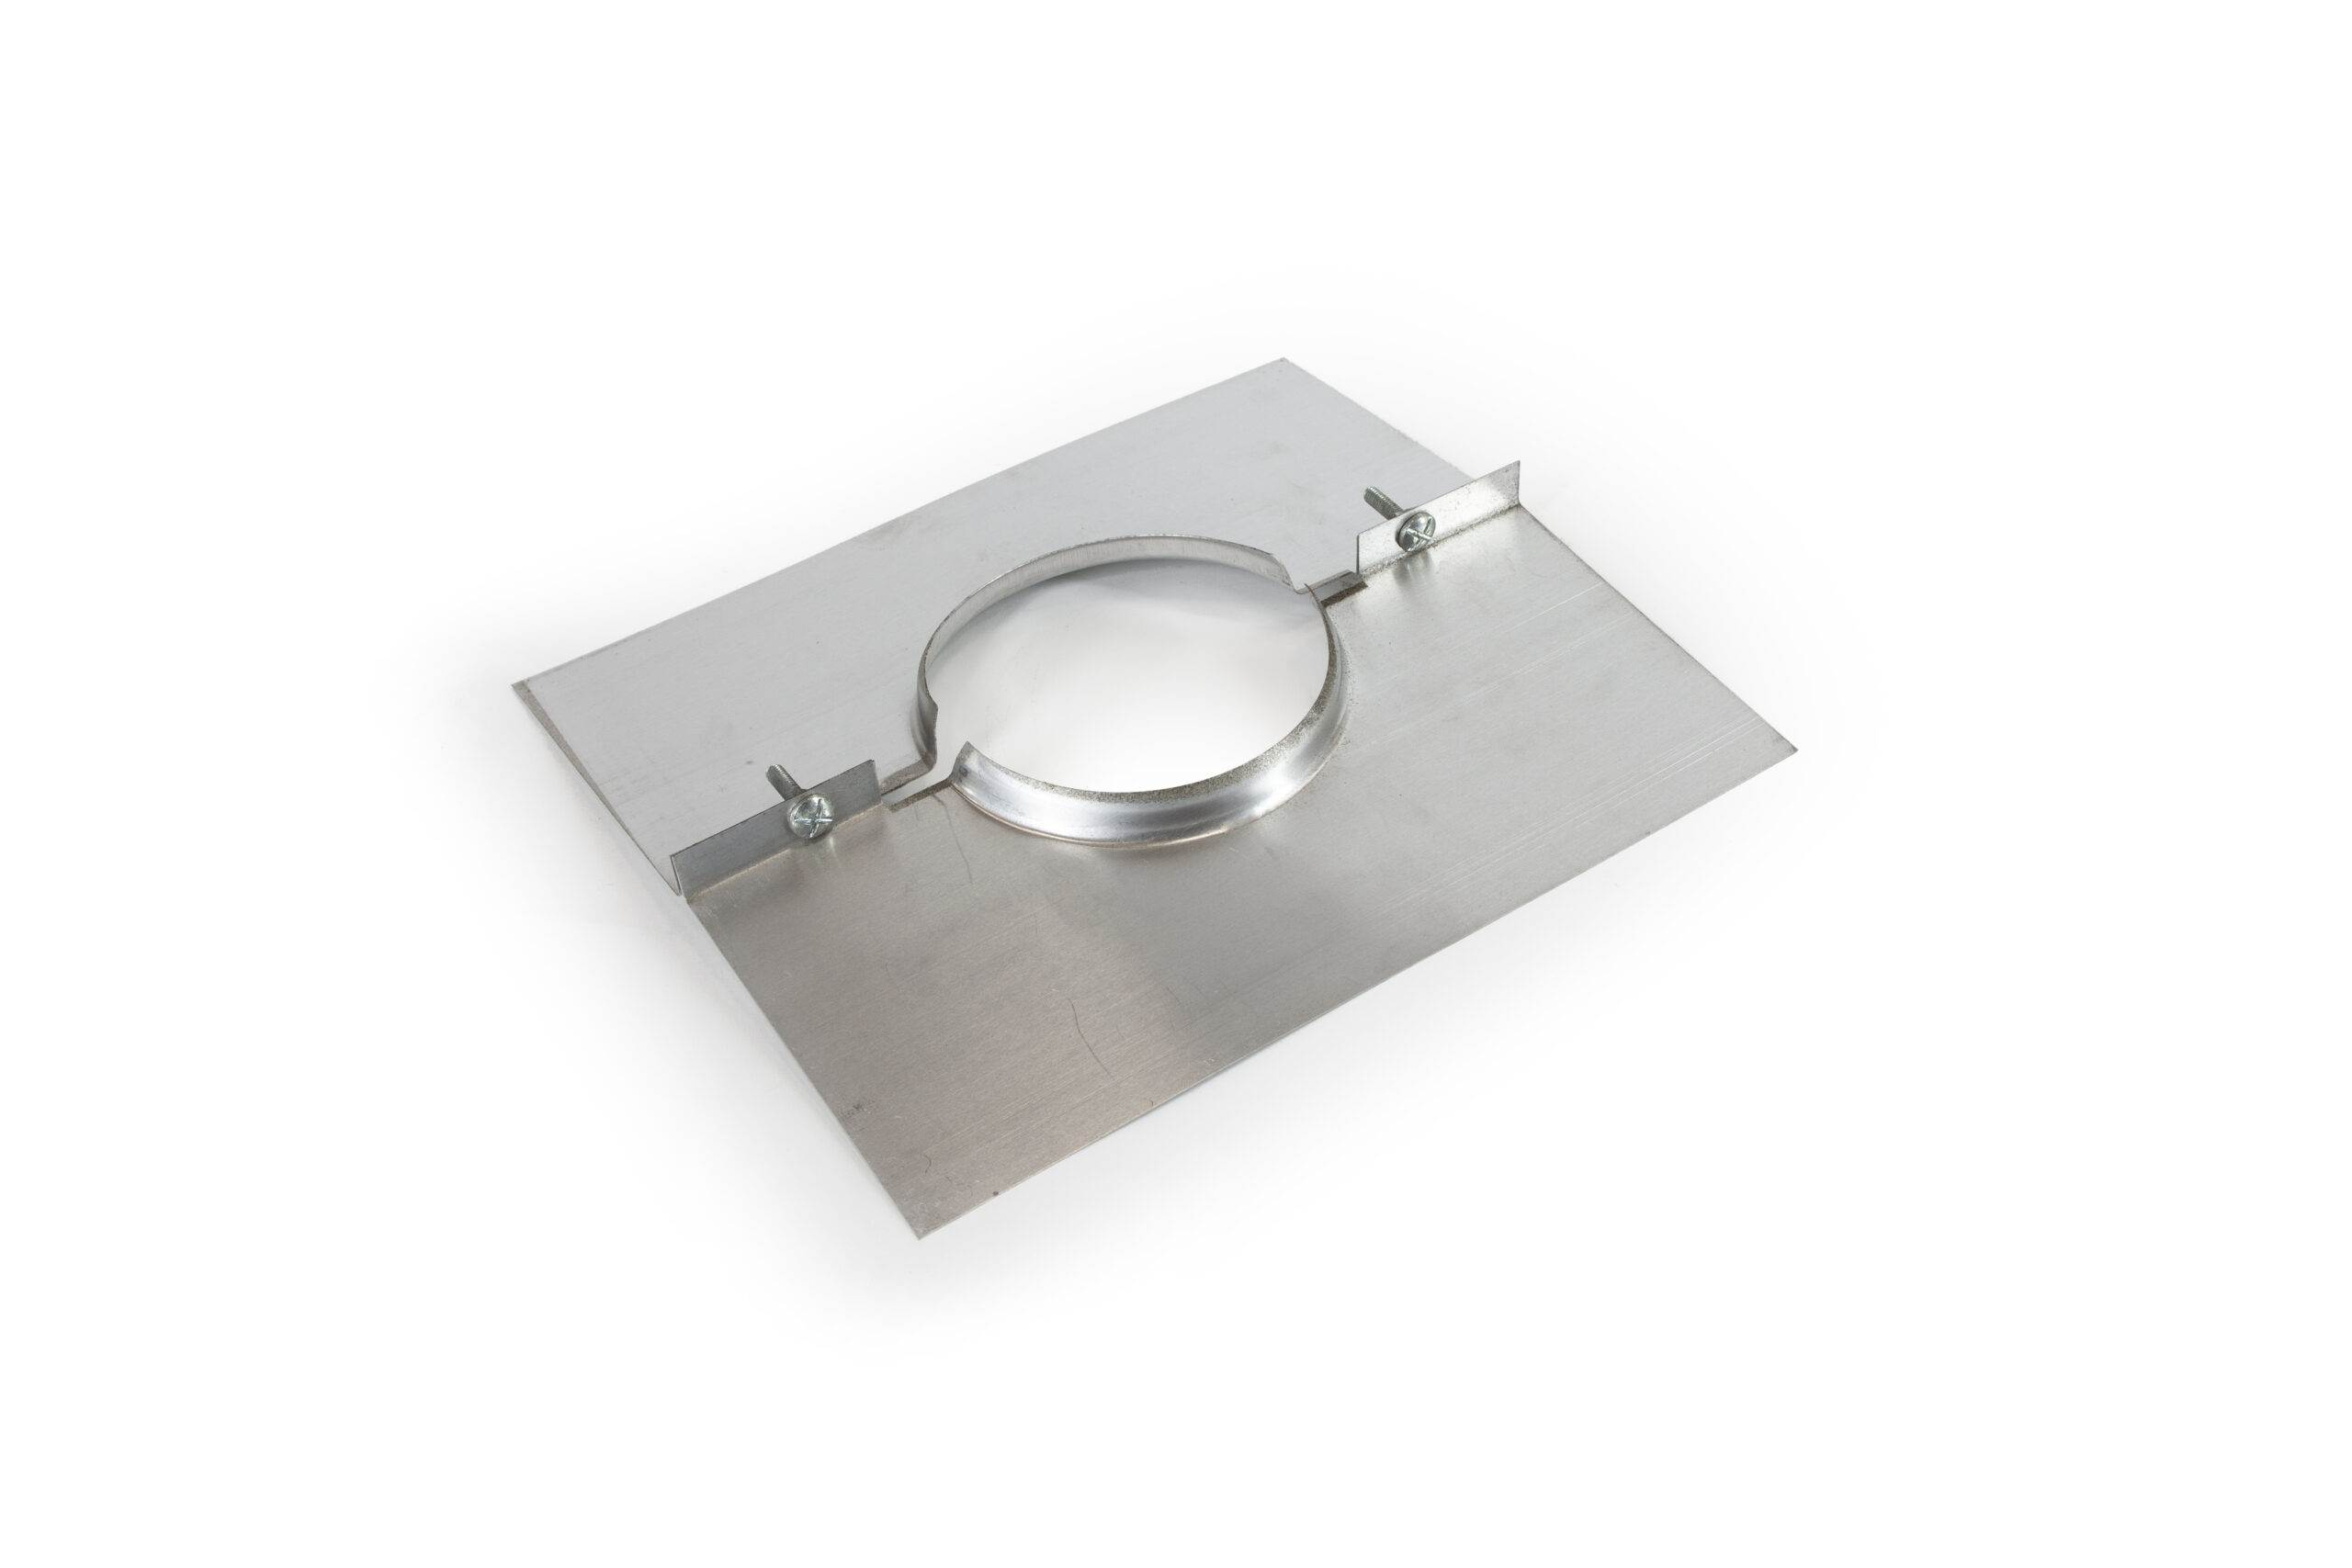 Plate & Clamp for Flexible Gas Liner